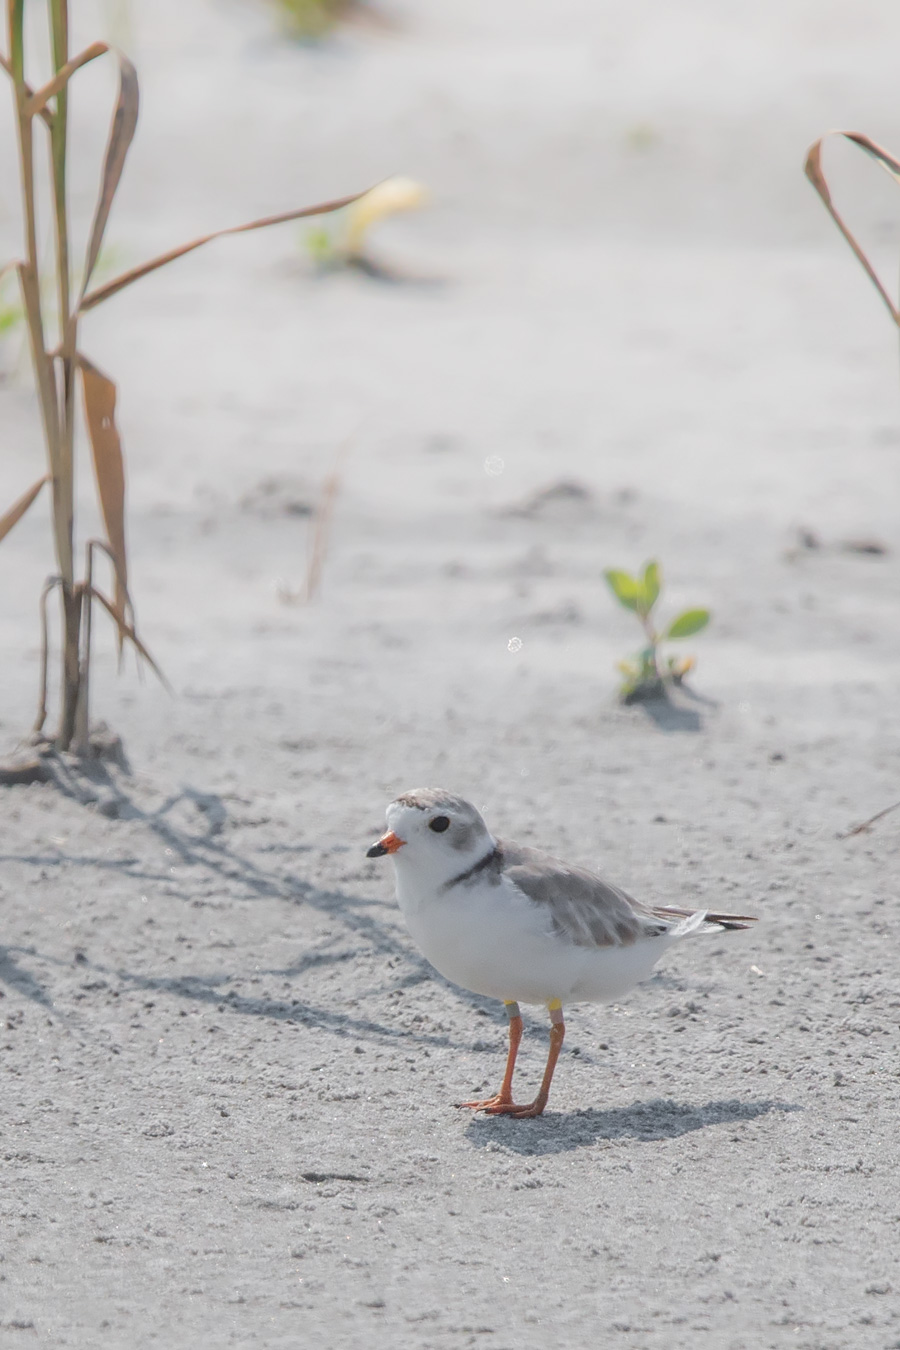 Born of the House Rafiki. Rafiki is one of New Jersey's rare banded Piping Plover. Atlantic Coast Piping Plover (as opposed to other groups, like Detroit Plover) are one of the very few birds susceptible to leg injury when banding. Piping Plover are only banded when the study involved is important enough to justify the potential risk.